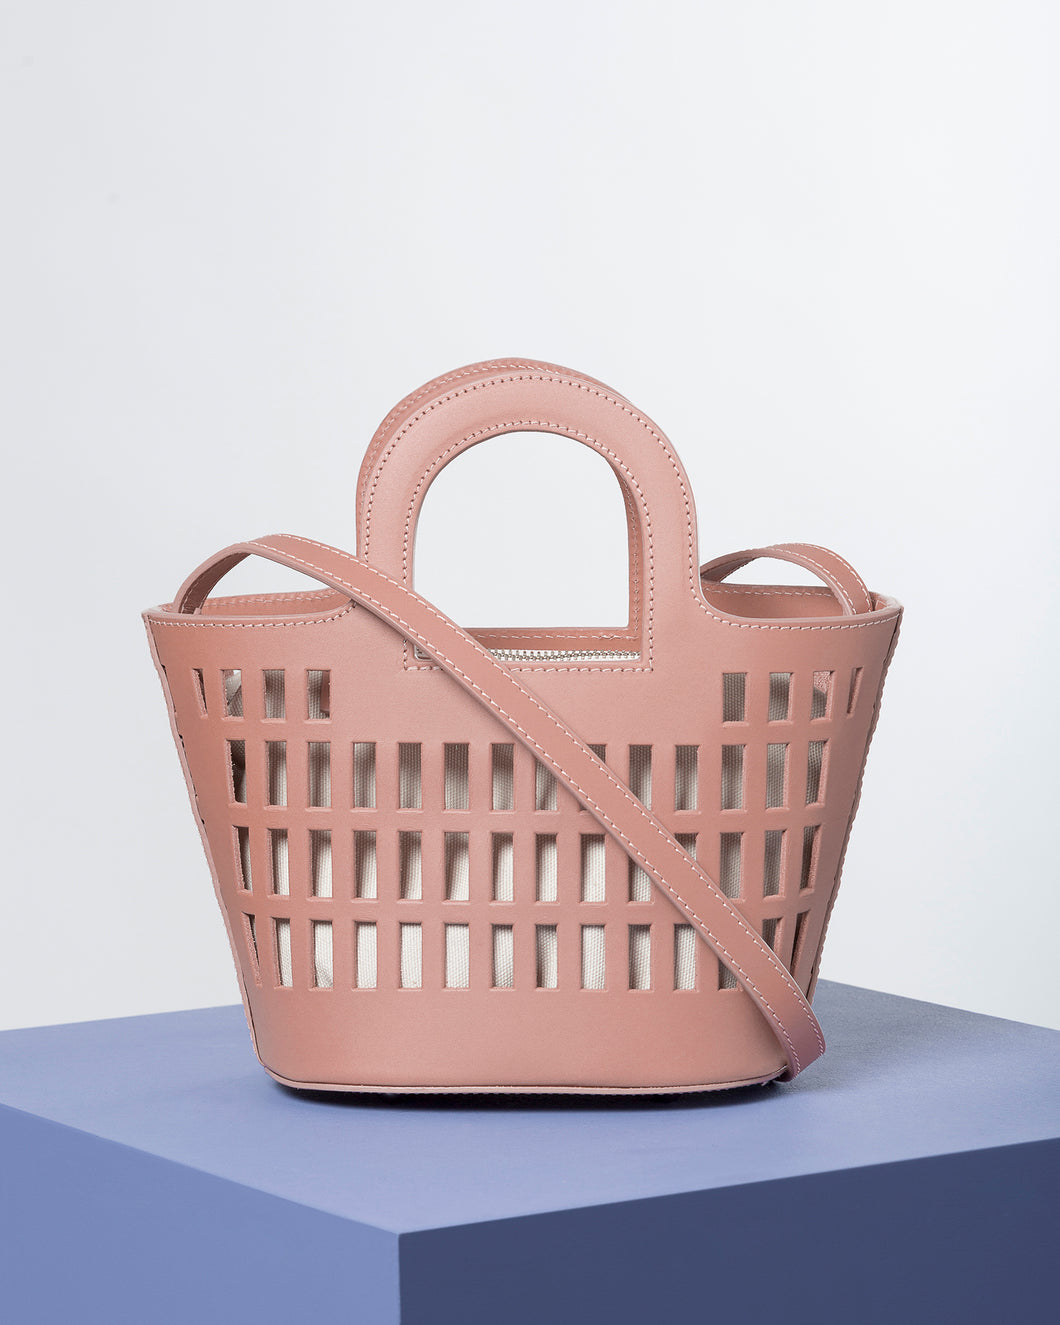 COLMADO XS - Cut-out Bag